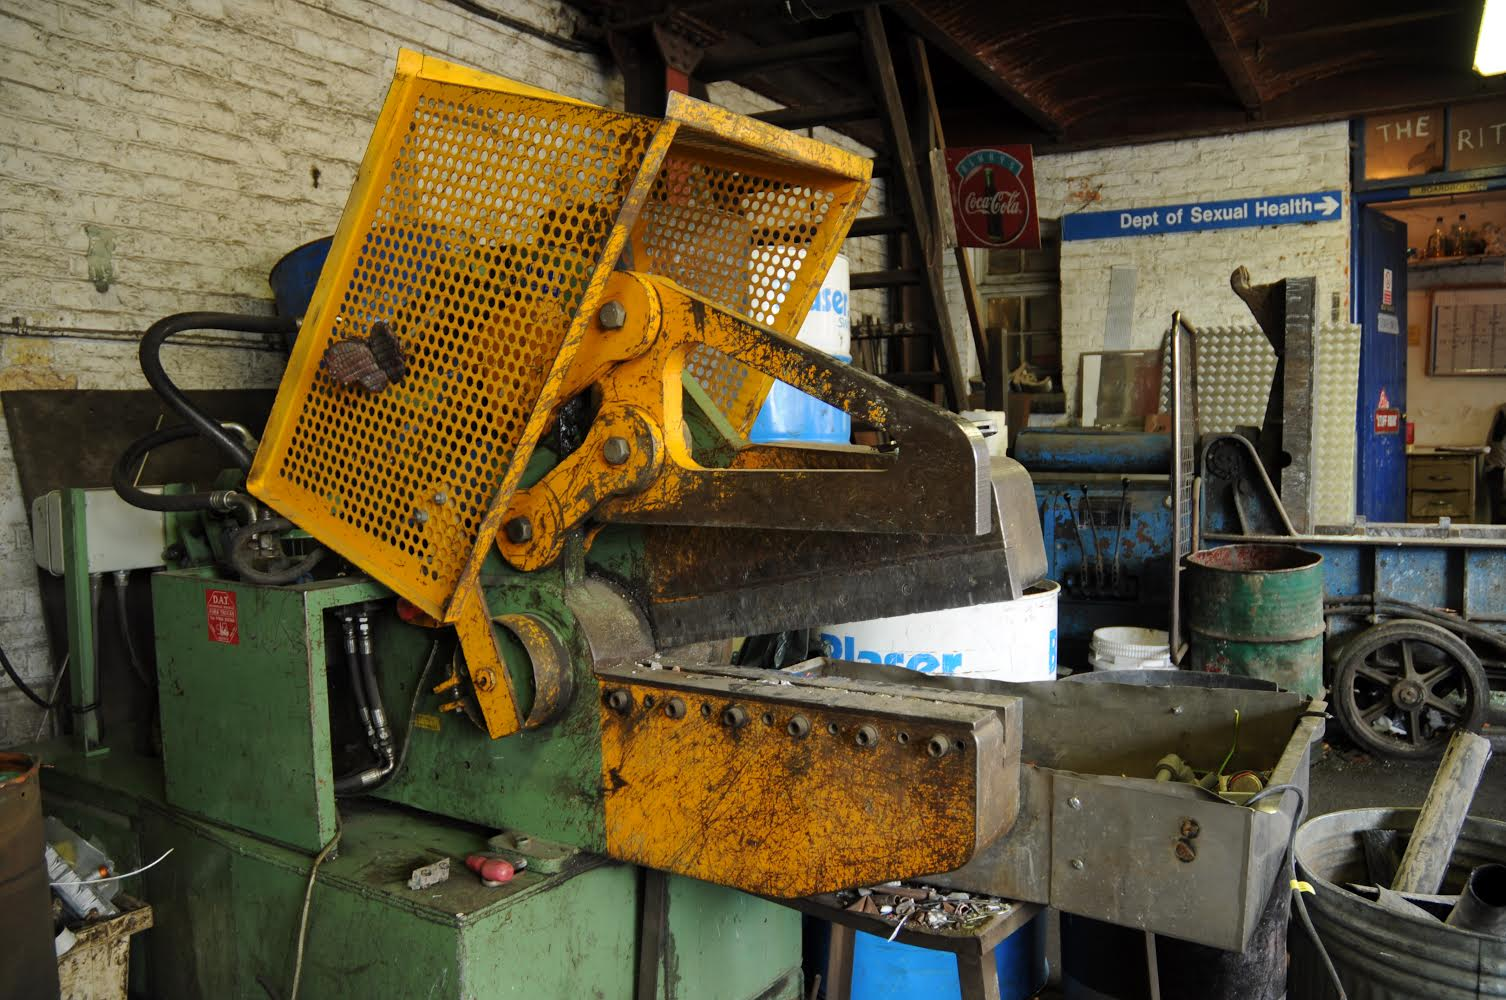 Metal shearing guillotine